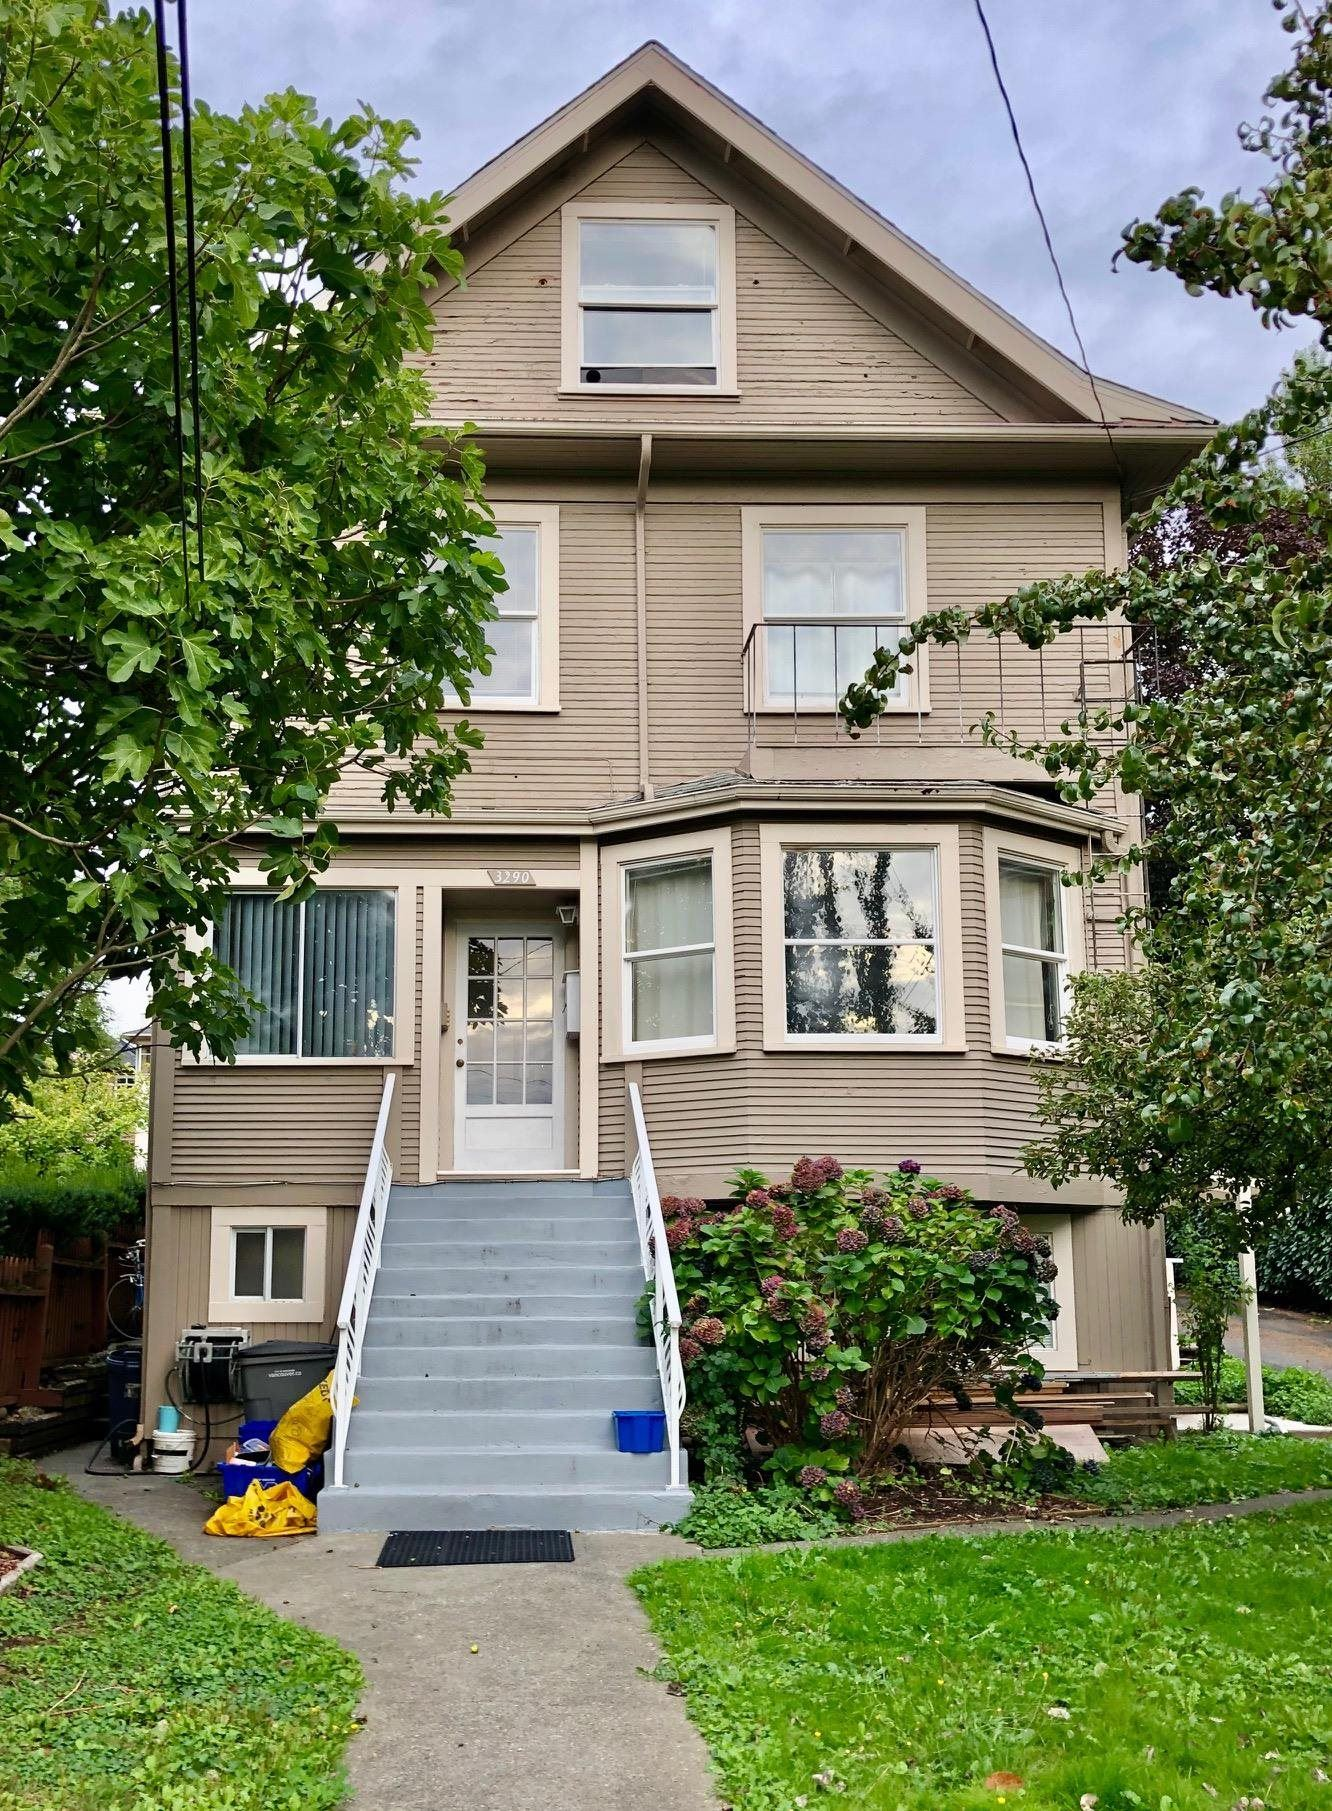 Photo of 3290 DUMFRIES STREET, Vancouver, BC V5N 3S3 (MLS # R2619780)